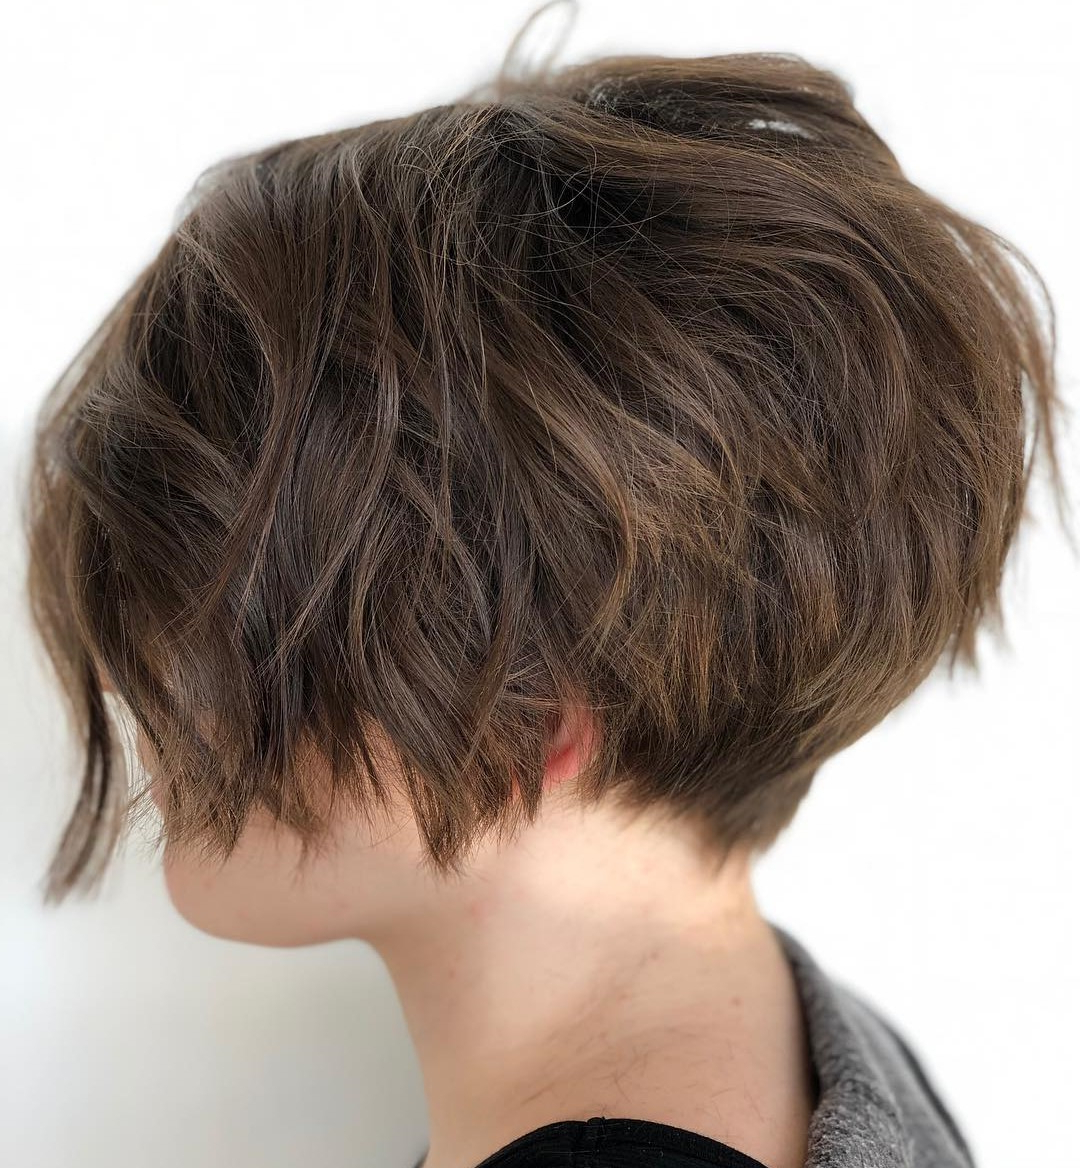 40 Short Hairstyles For Thick Hair (Trendy In 2019 2020 Regarding Inverted Caramel Bob Hairstyles With Wavy Layers (View 5 of 20)